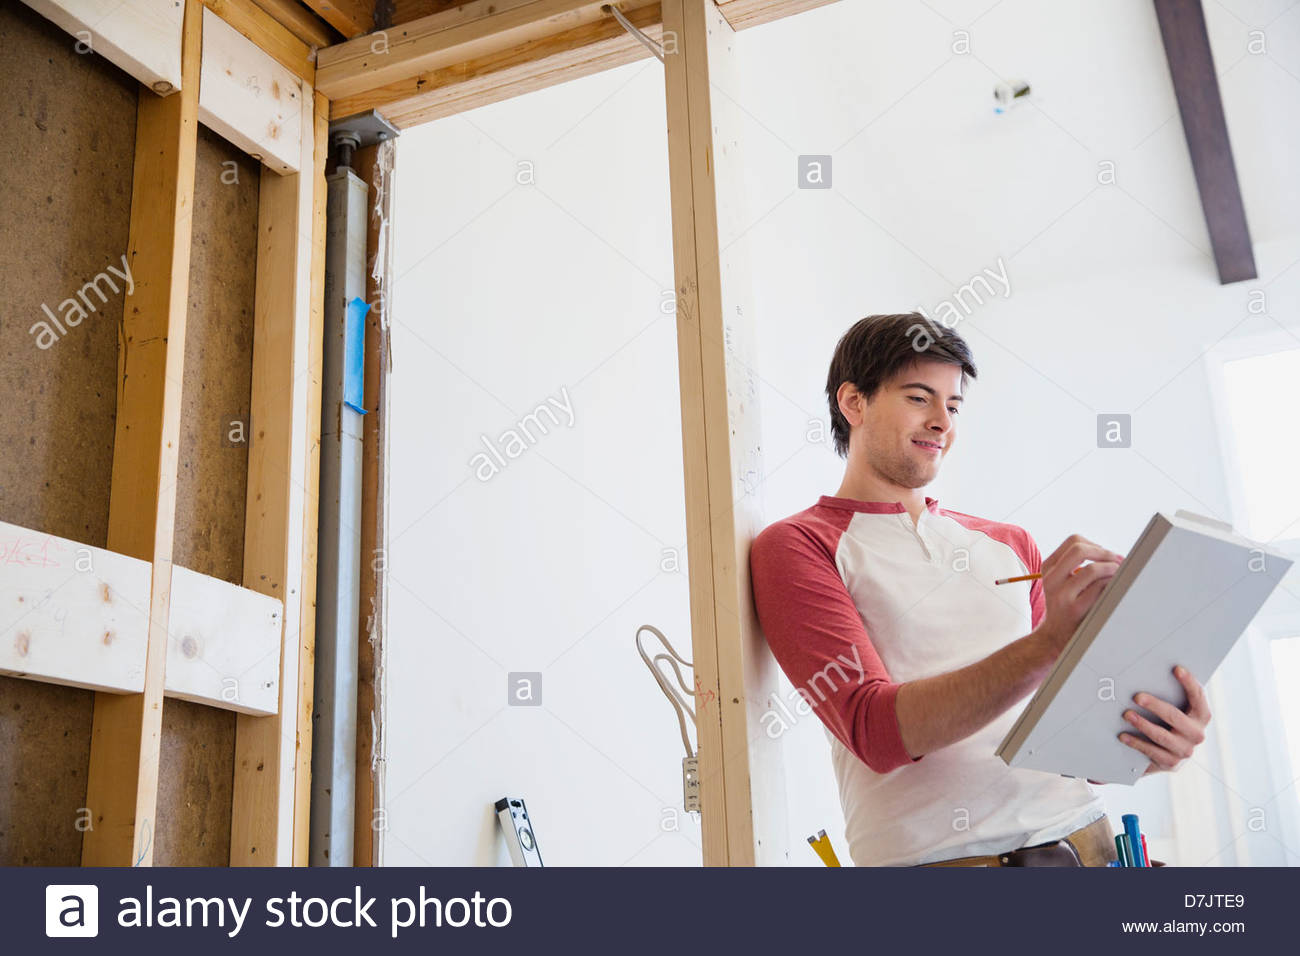 Man writing on clipboard in home - Stock Image